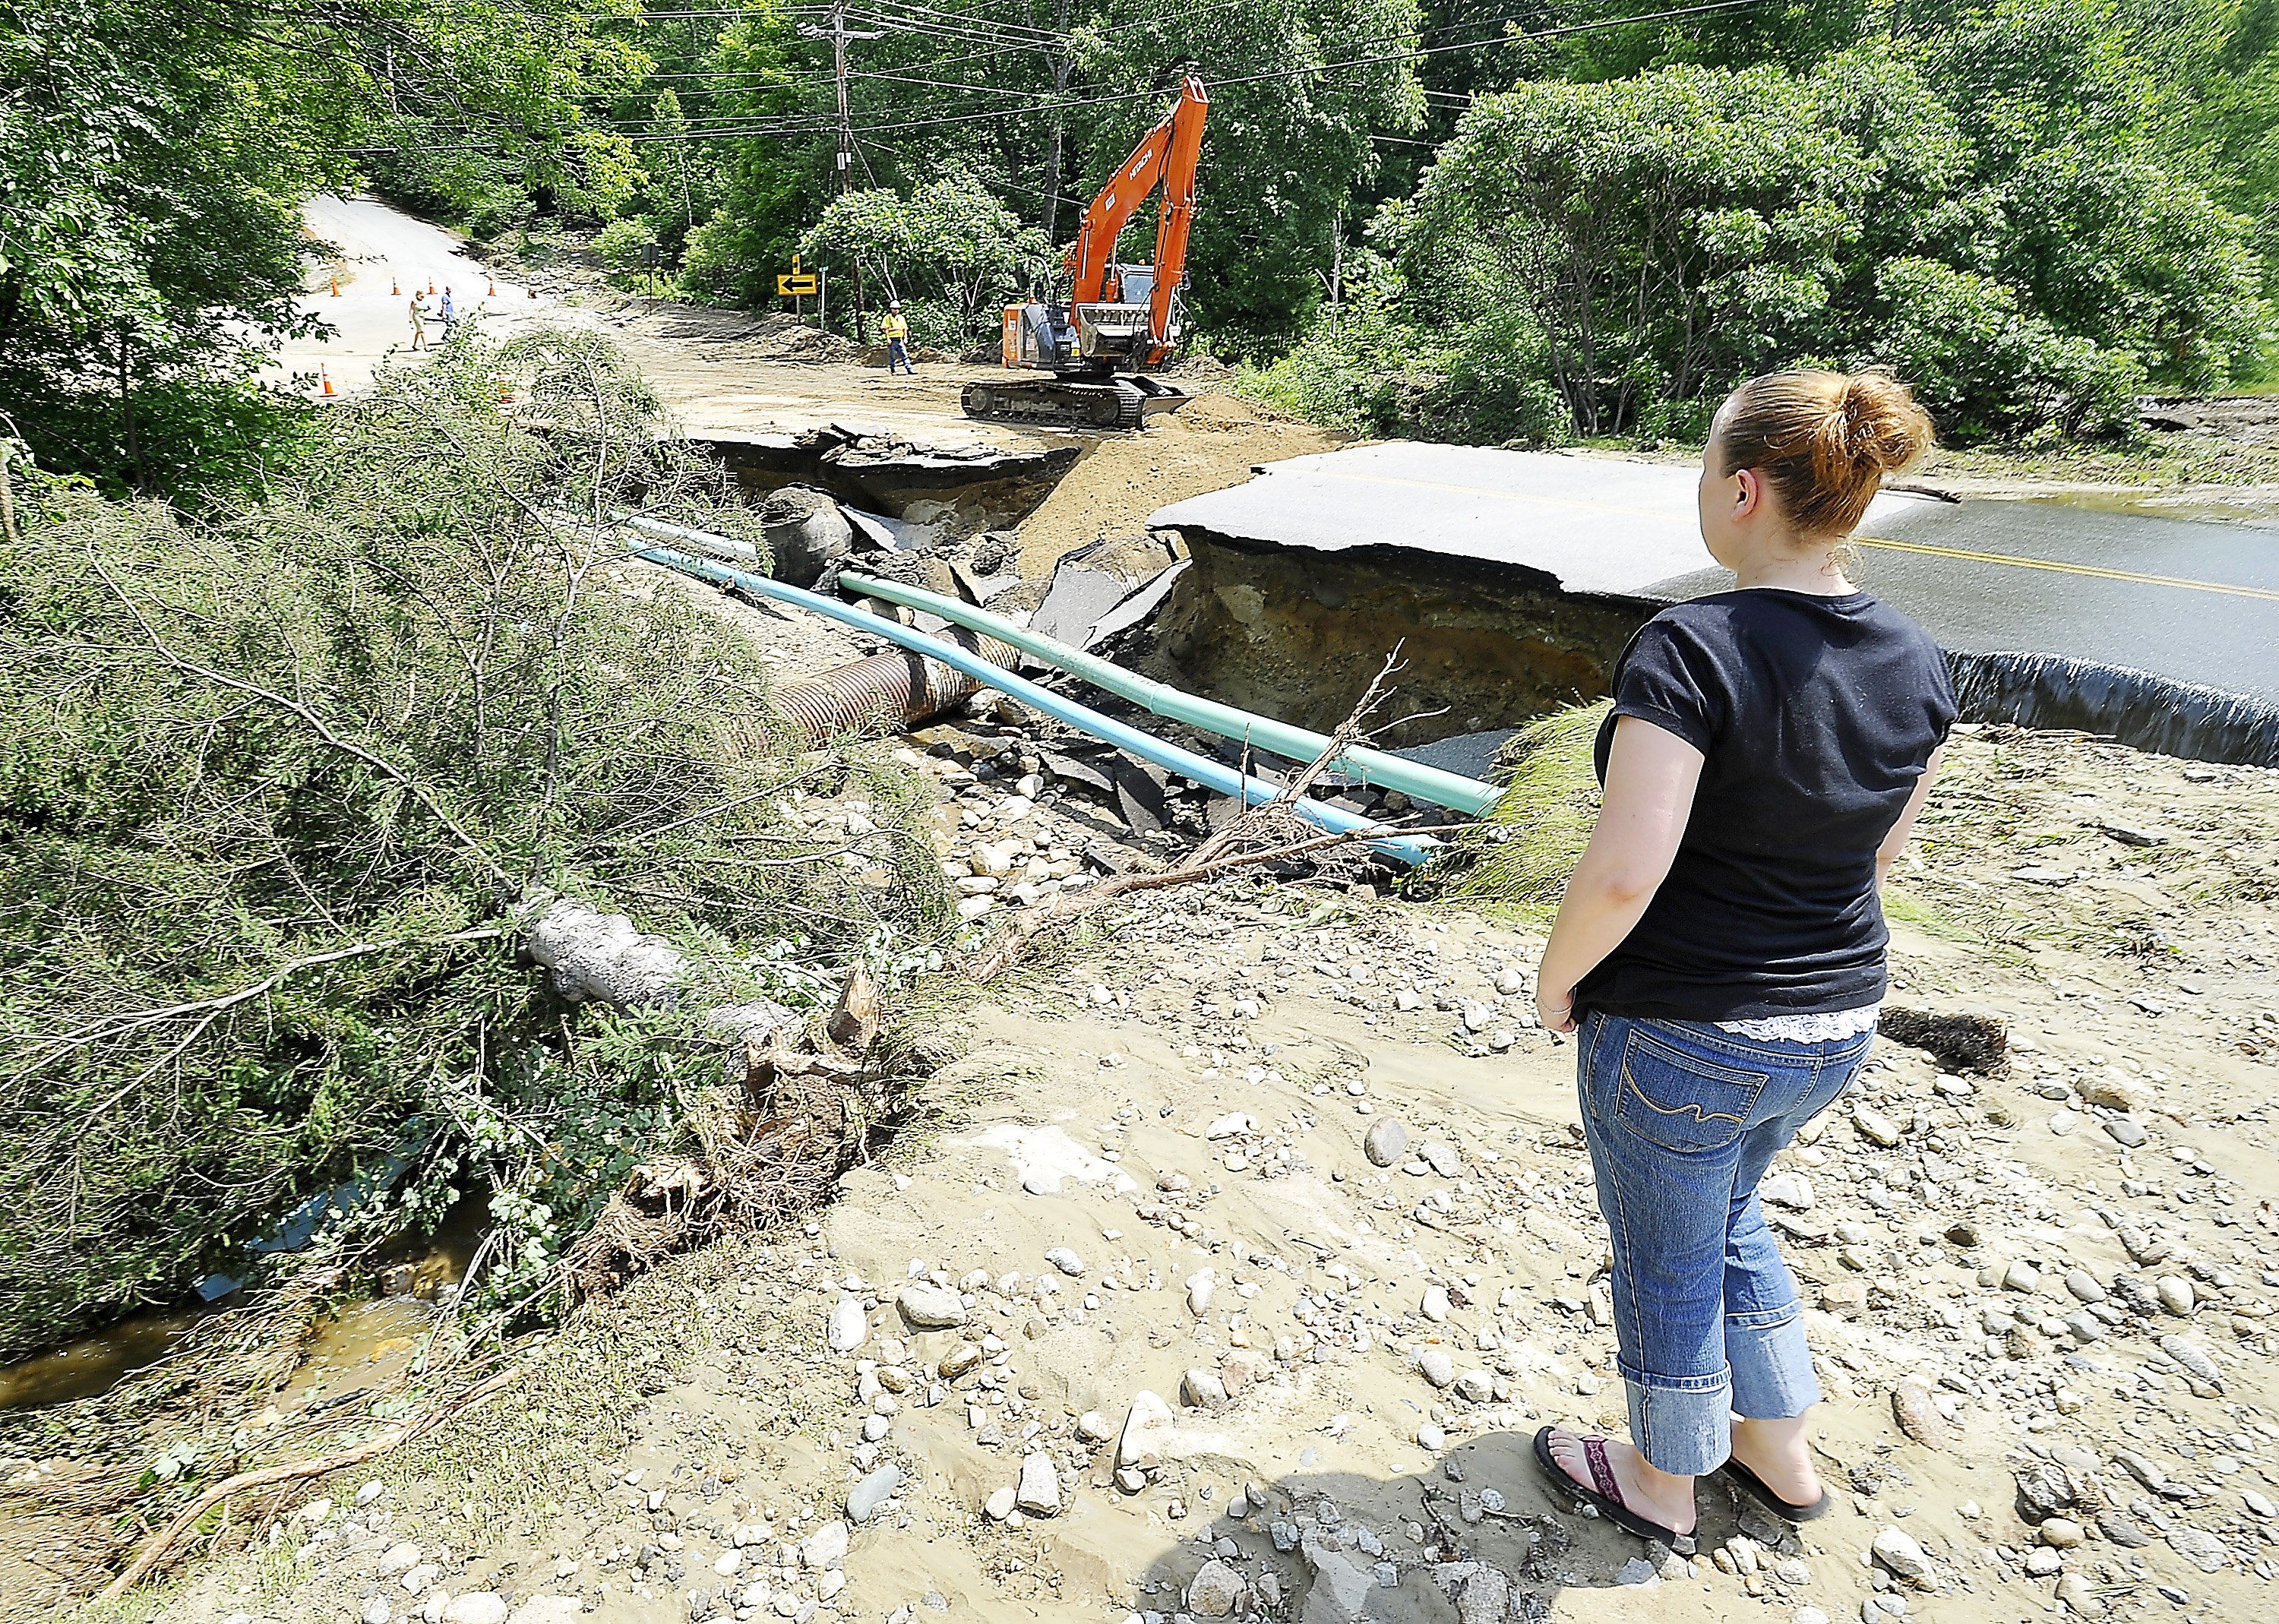 Rumford resident Sophie Post on Thursday looks at what used to be her garden and a large fir tree that tumbled into the washed-out gorge carved by  flood waters the previous night as  a crew makes temporary repairs .